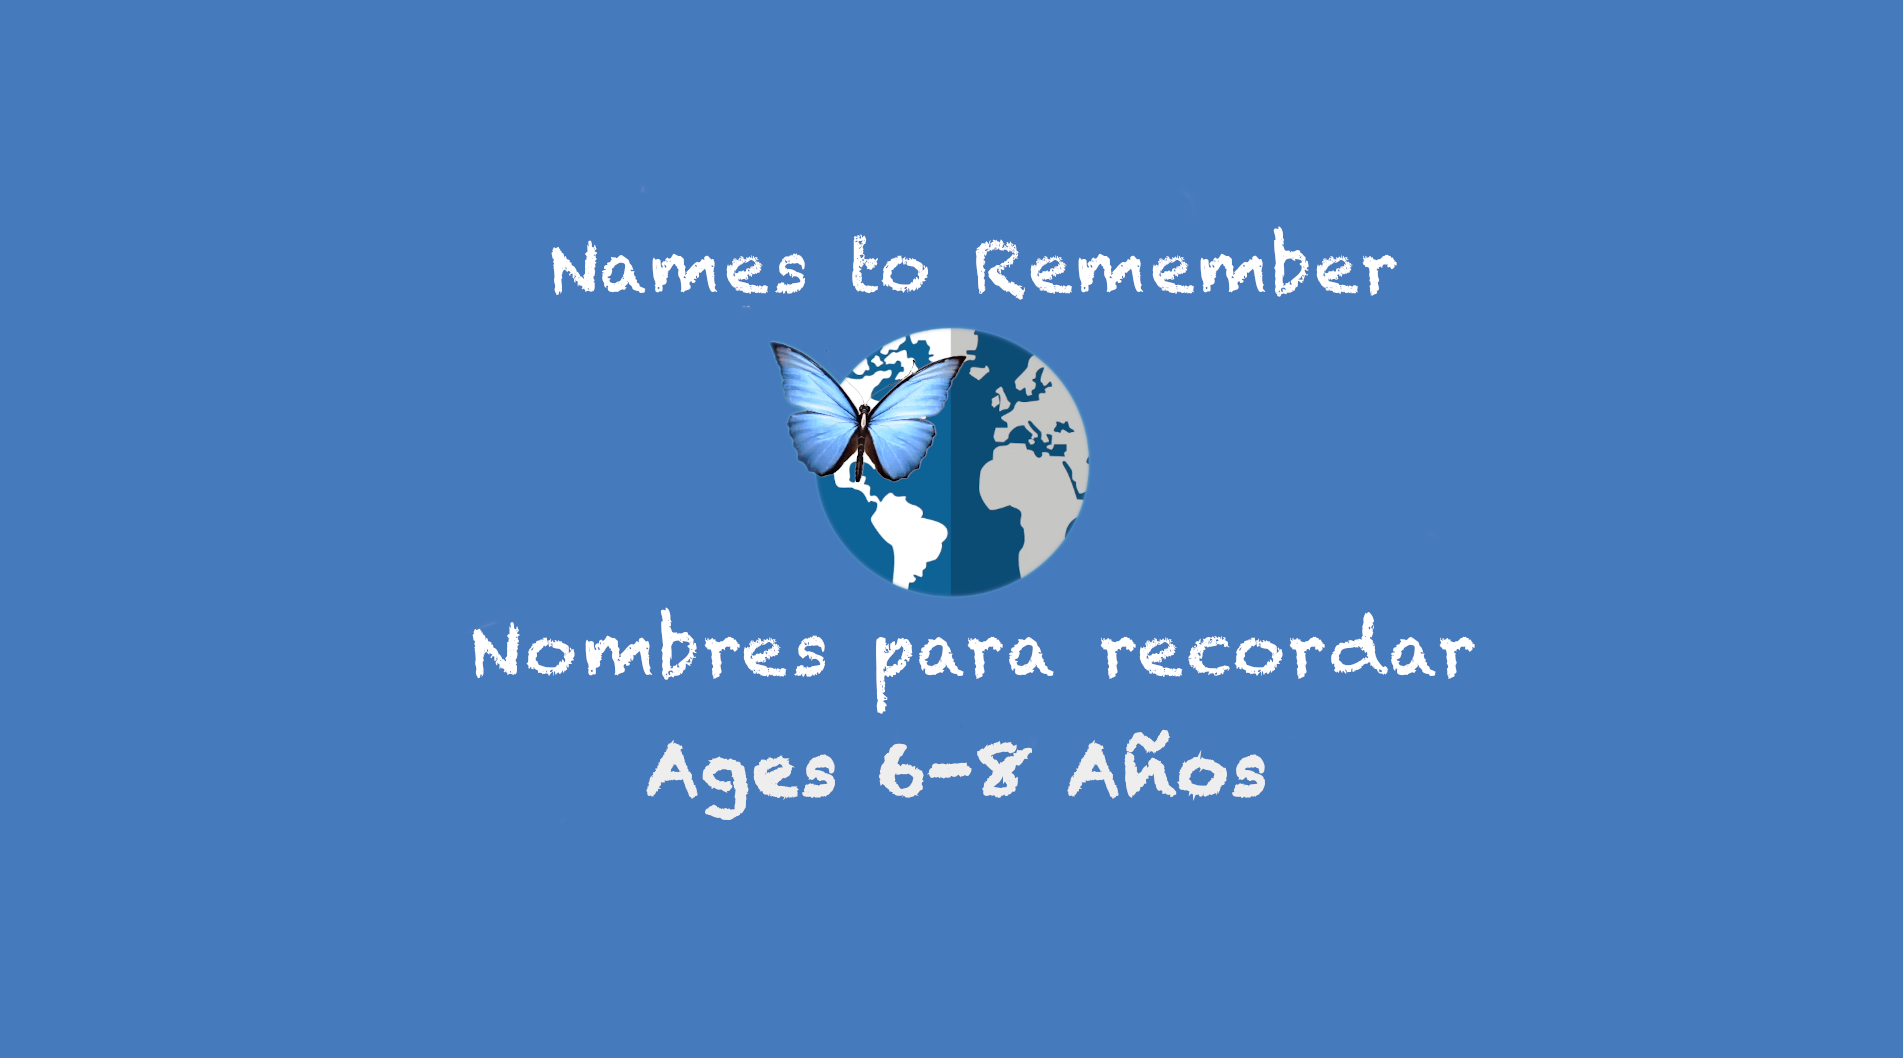 Weekly Themes #9: Names to Remember for 6-8 years old